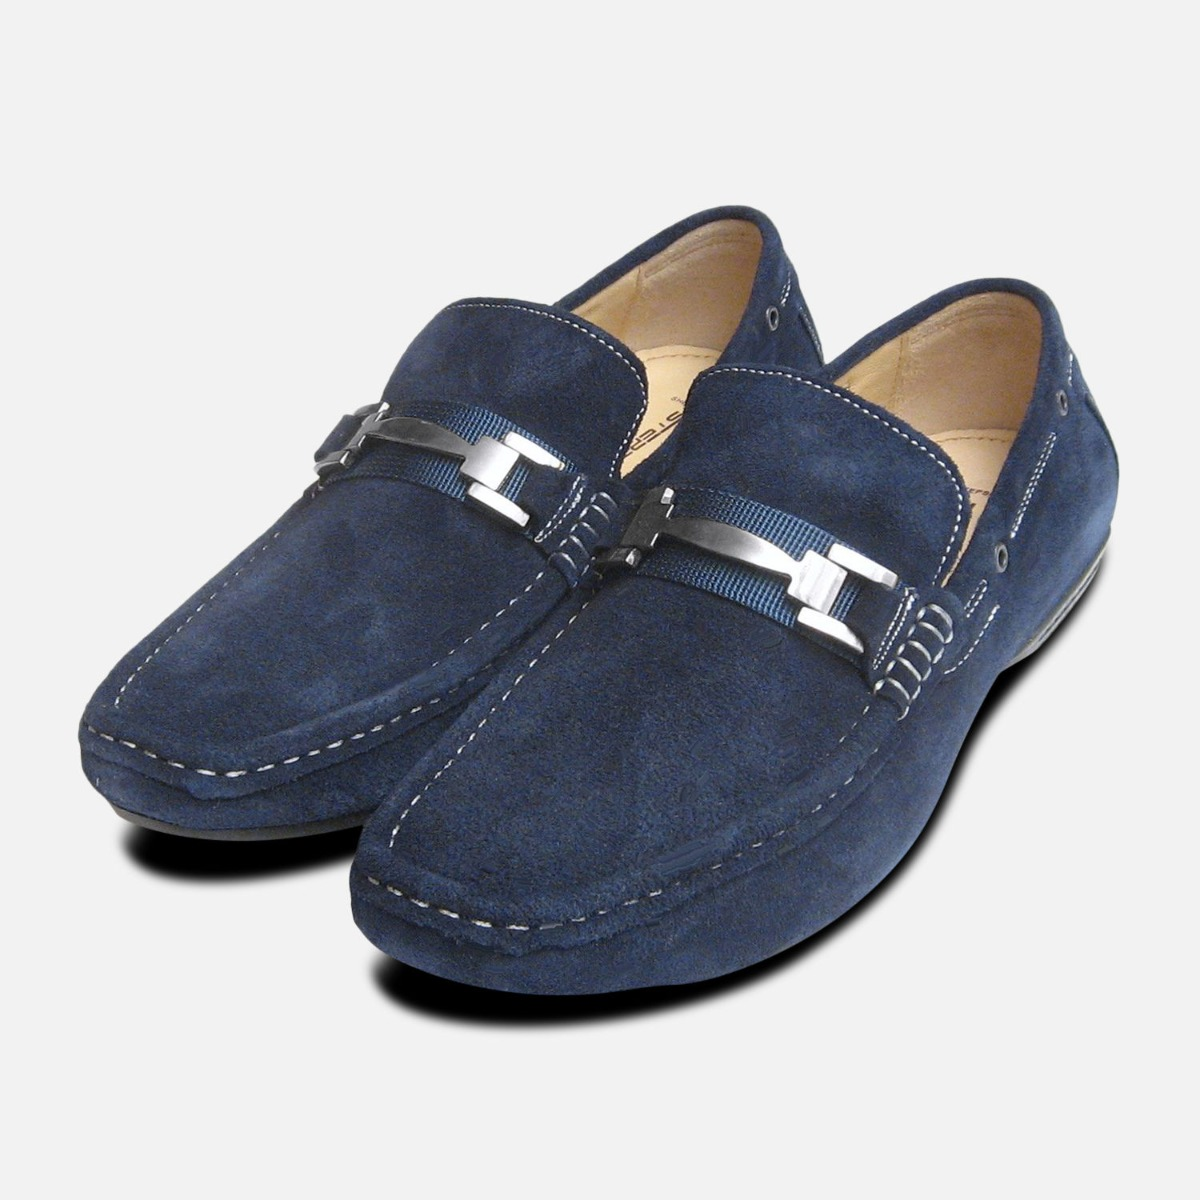 Designer Navy Blue Suede Loafers by